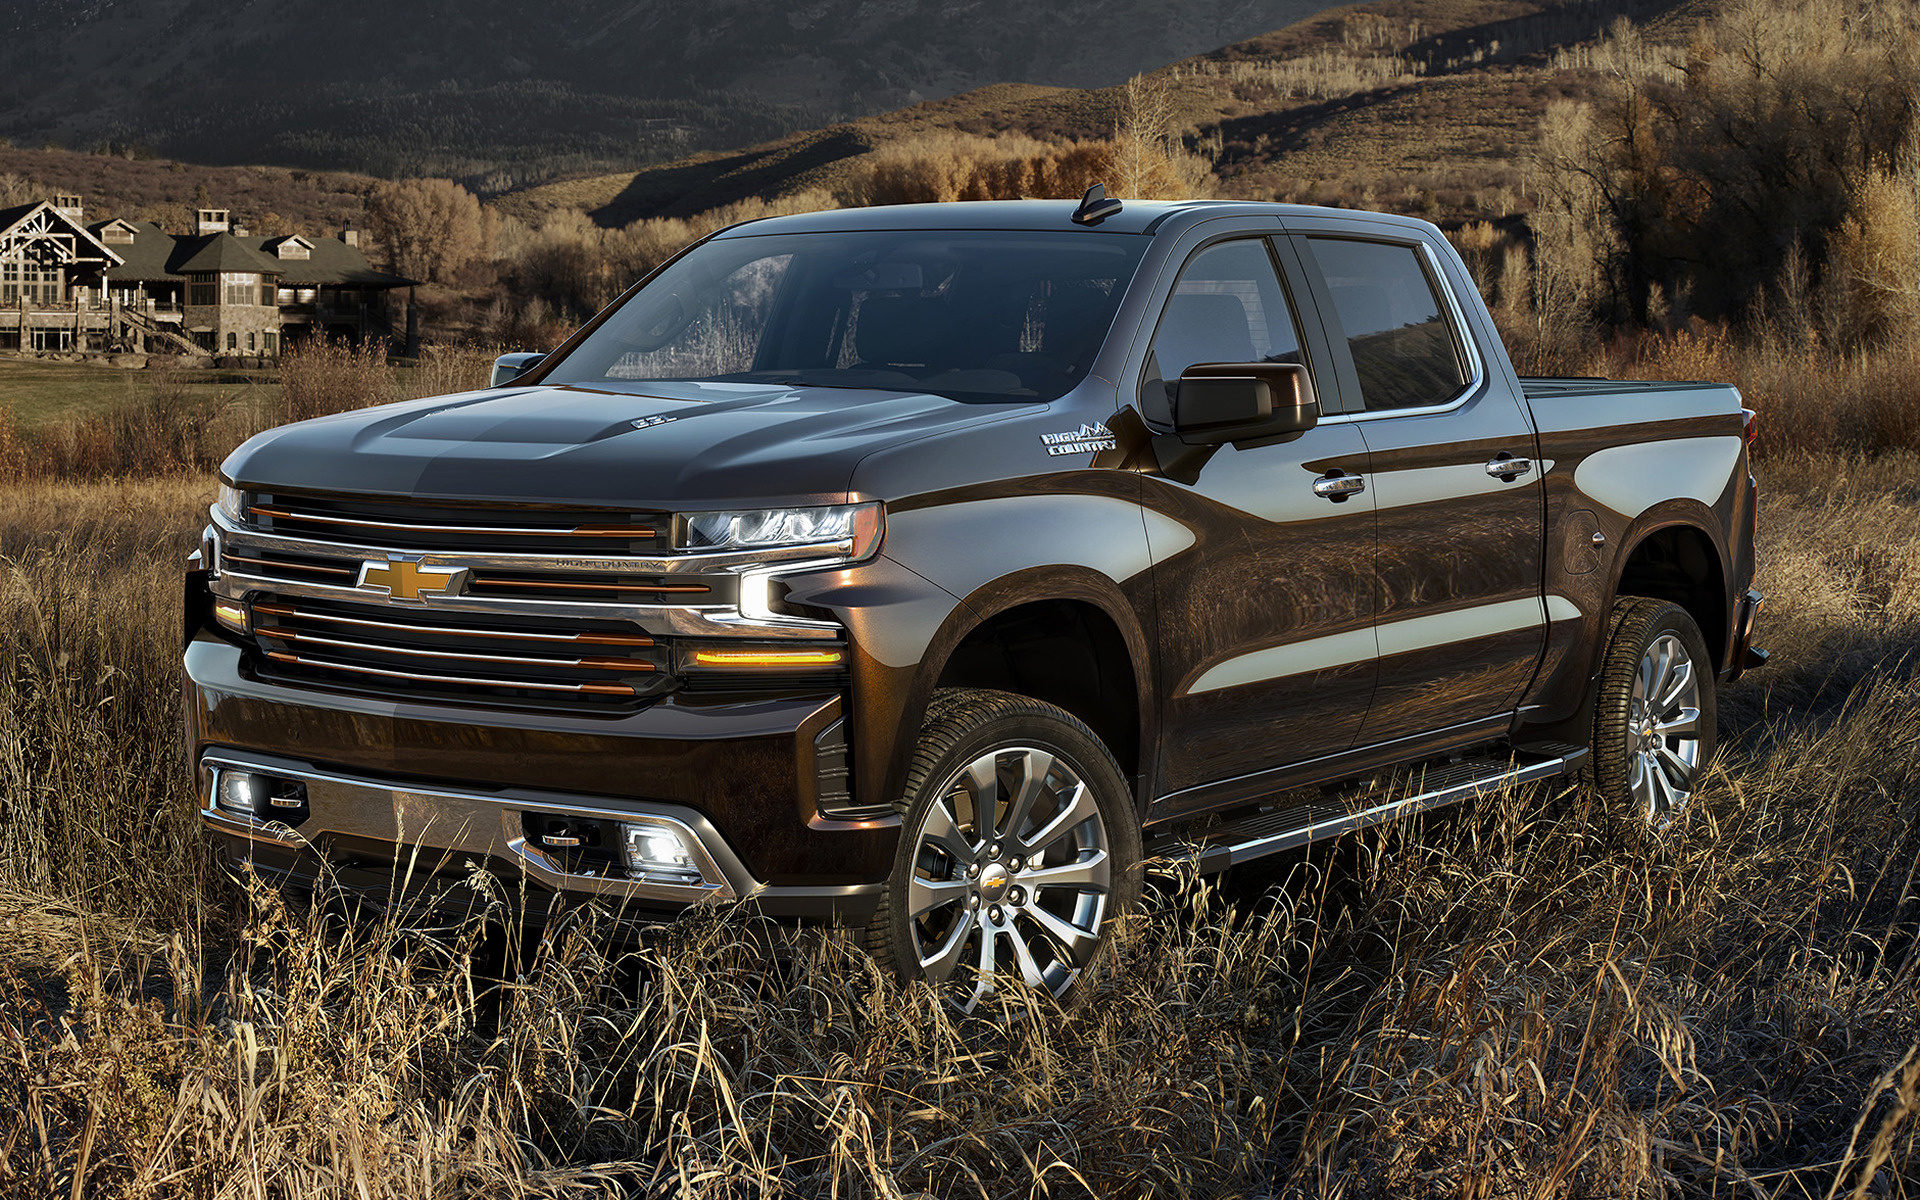 Dodge Crew Cab >> 2019 Chevrolet Silverado High Country Crew Cab ...